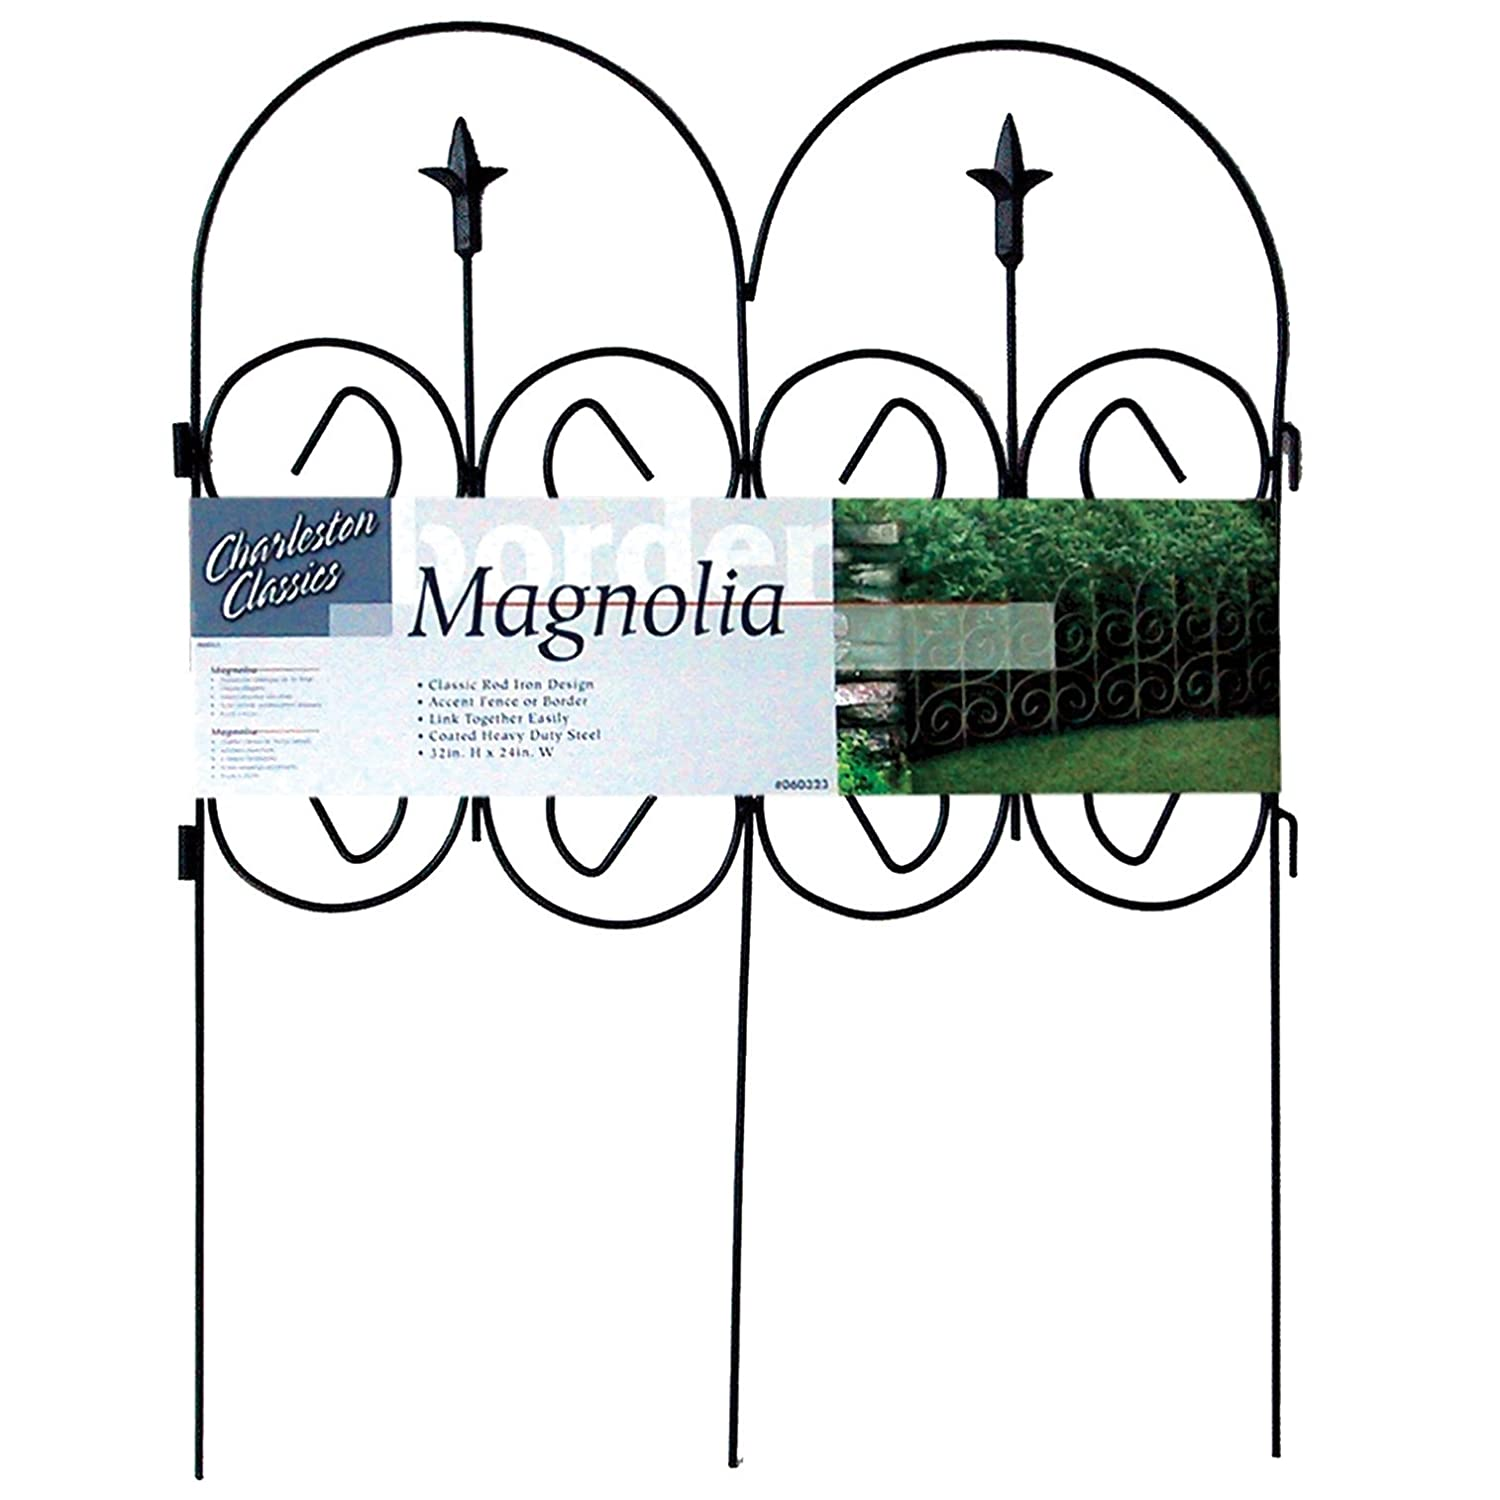 Origin Point Magnolia Classic Decorative Steel Landscape Border Fence Section